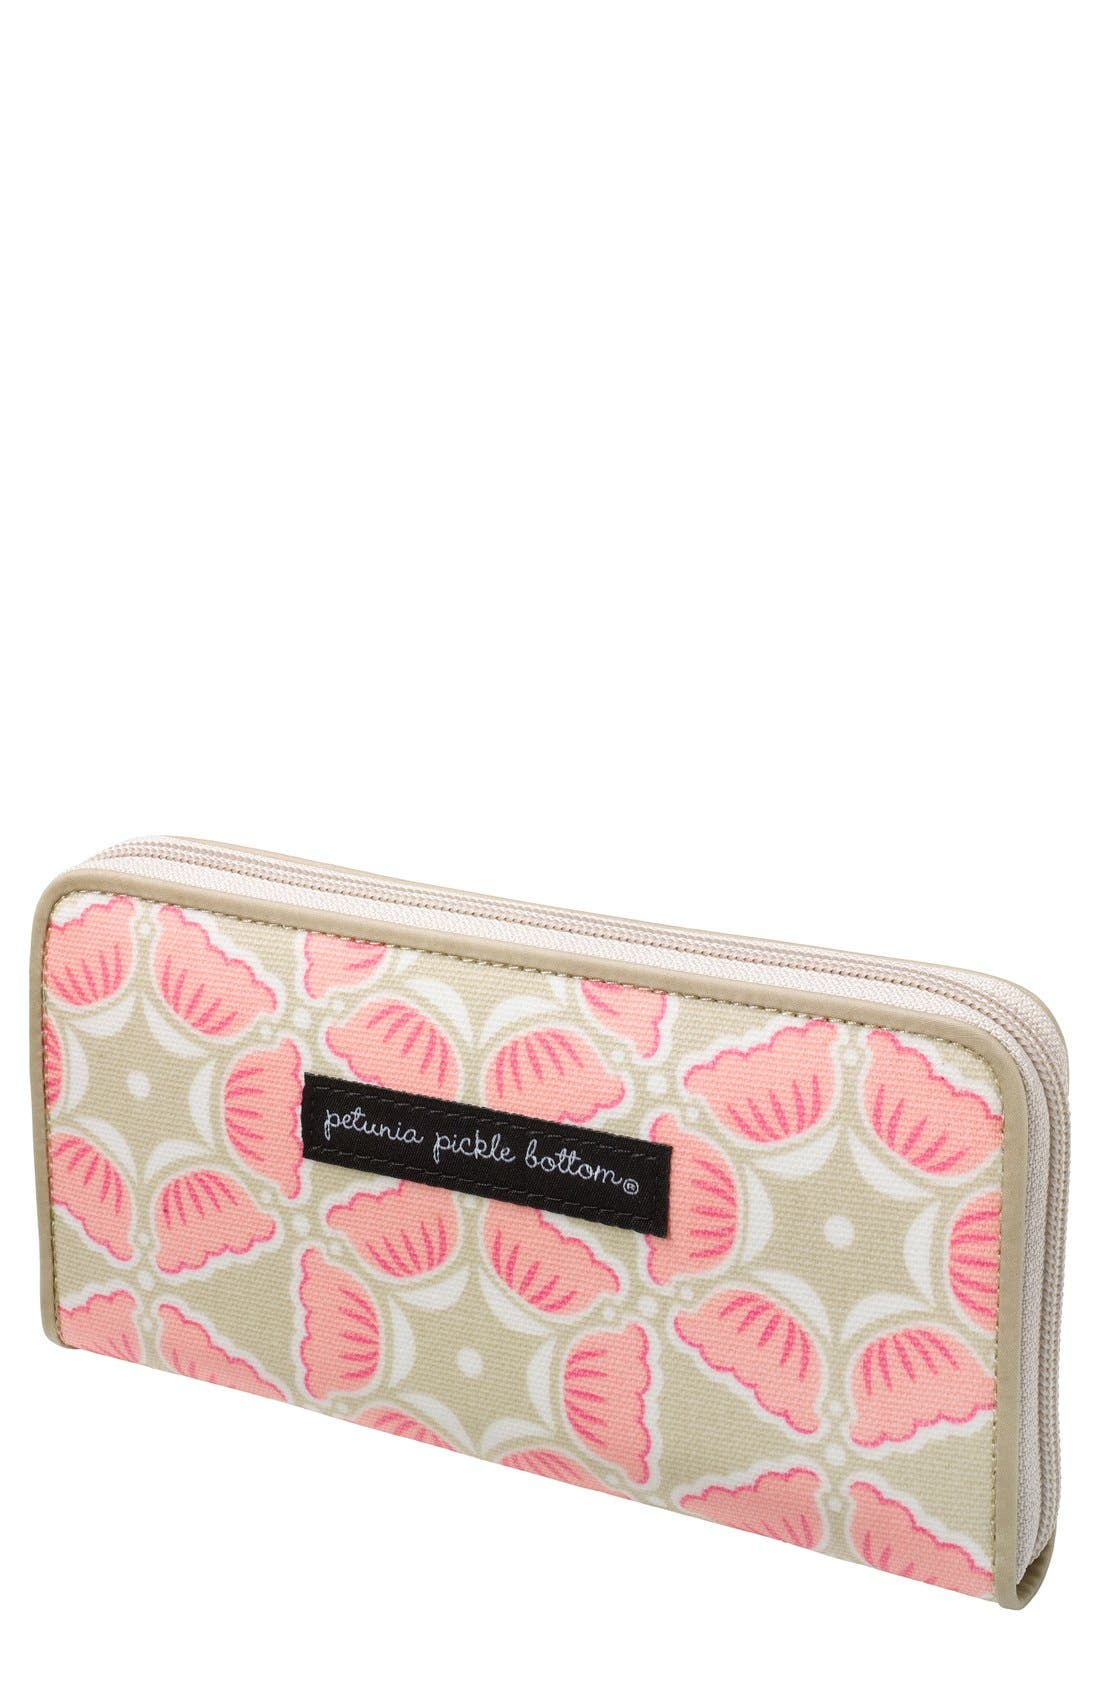 Main Image - Petunia Pickle Bottom 'Wanderlust' Wallet